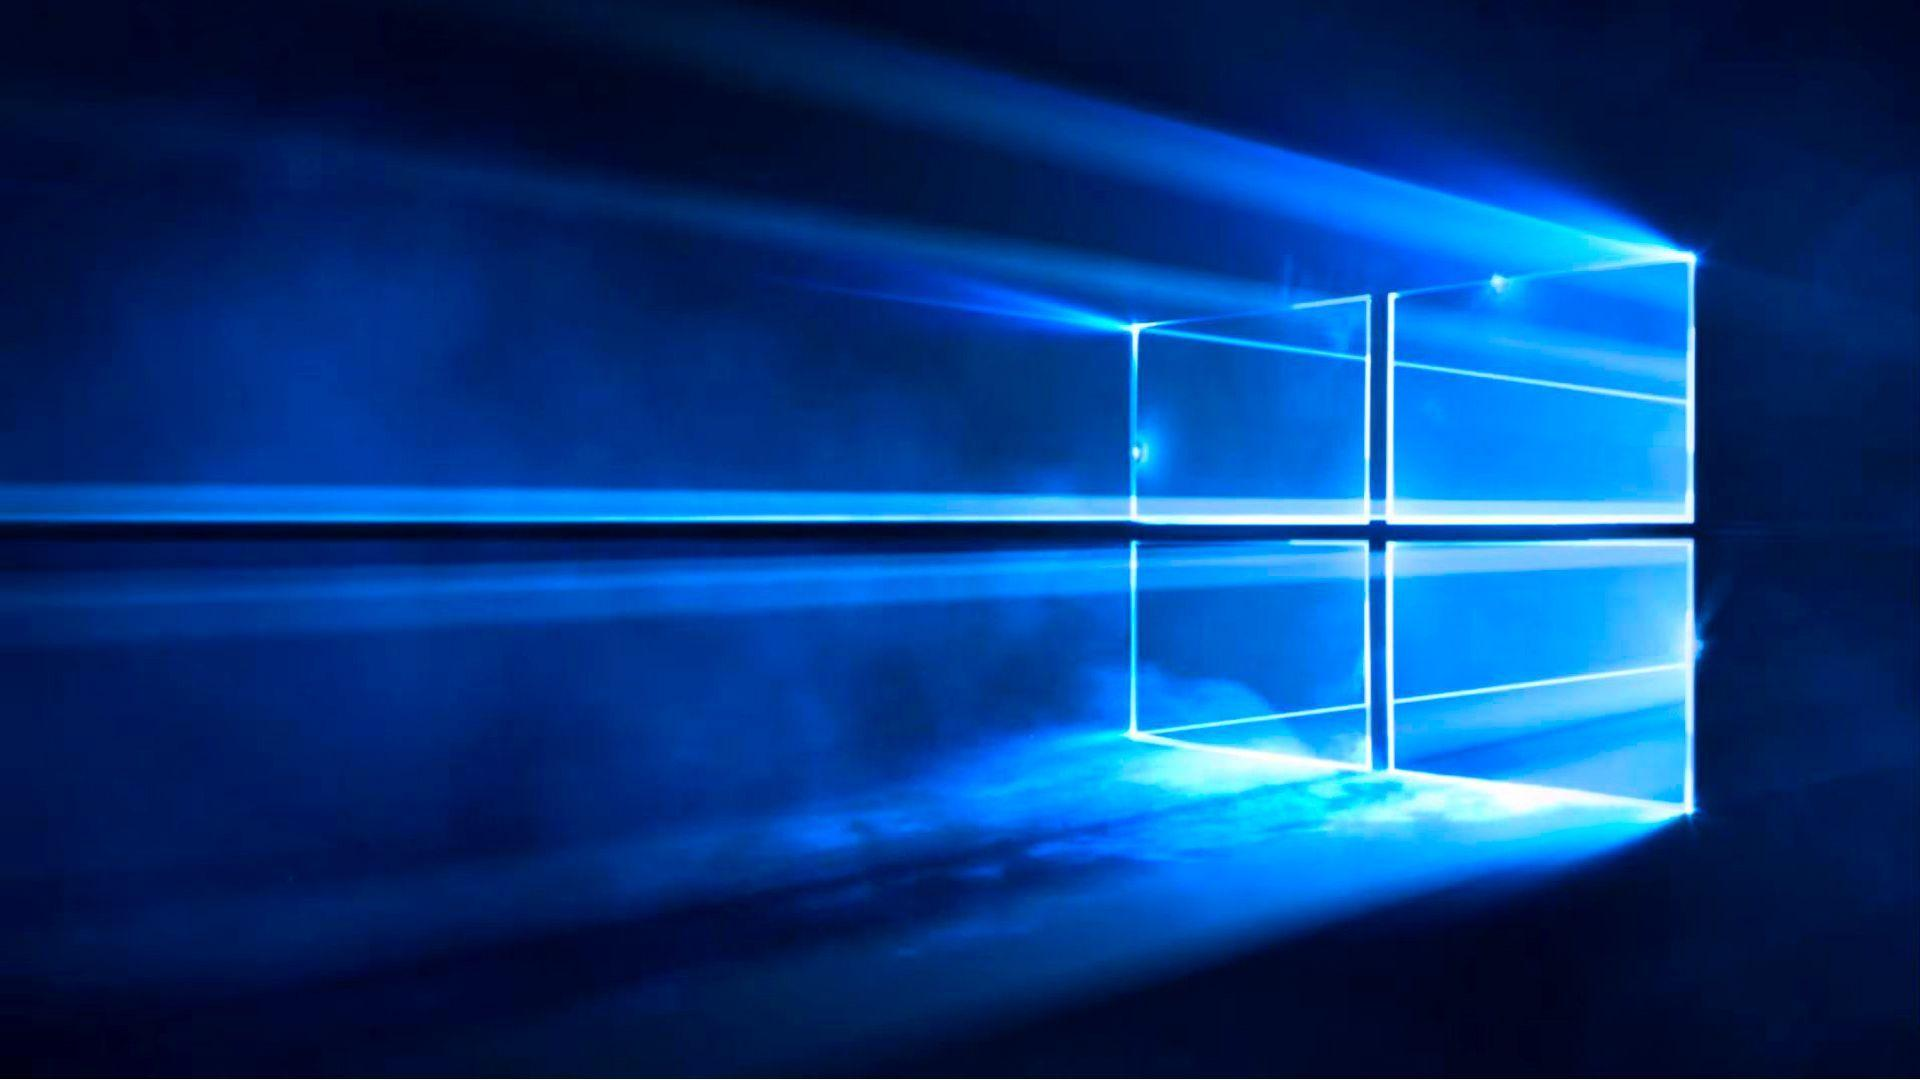 Windows 10 Wallpapers Windows 10 Wallpapers Default Preview